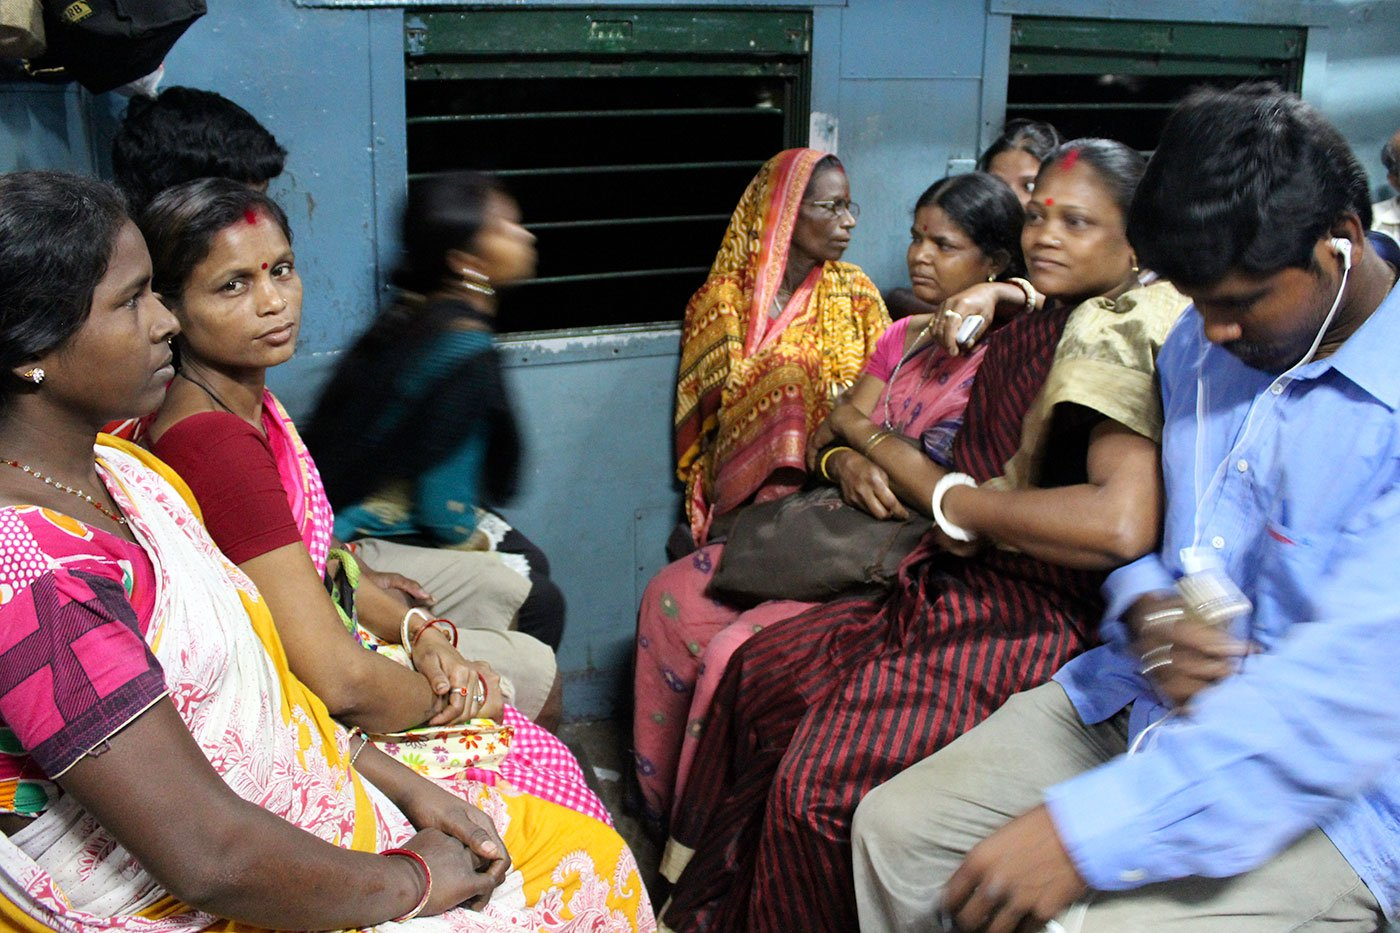 Breshpati Sardar sitting in the train early in the morning